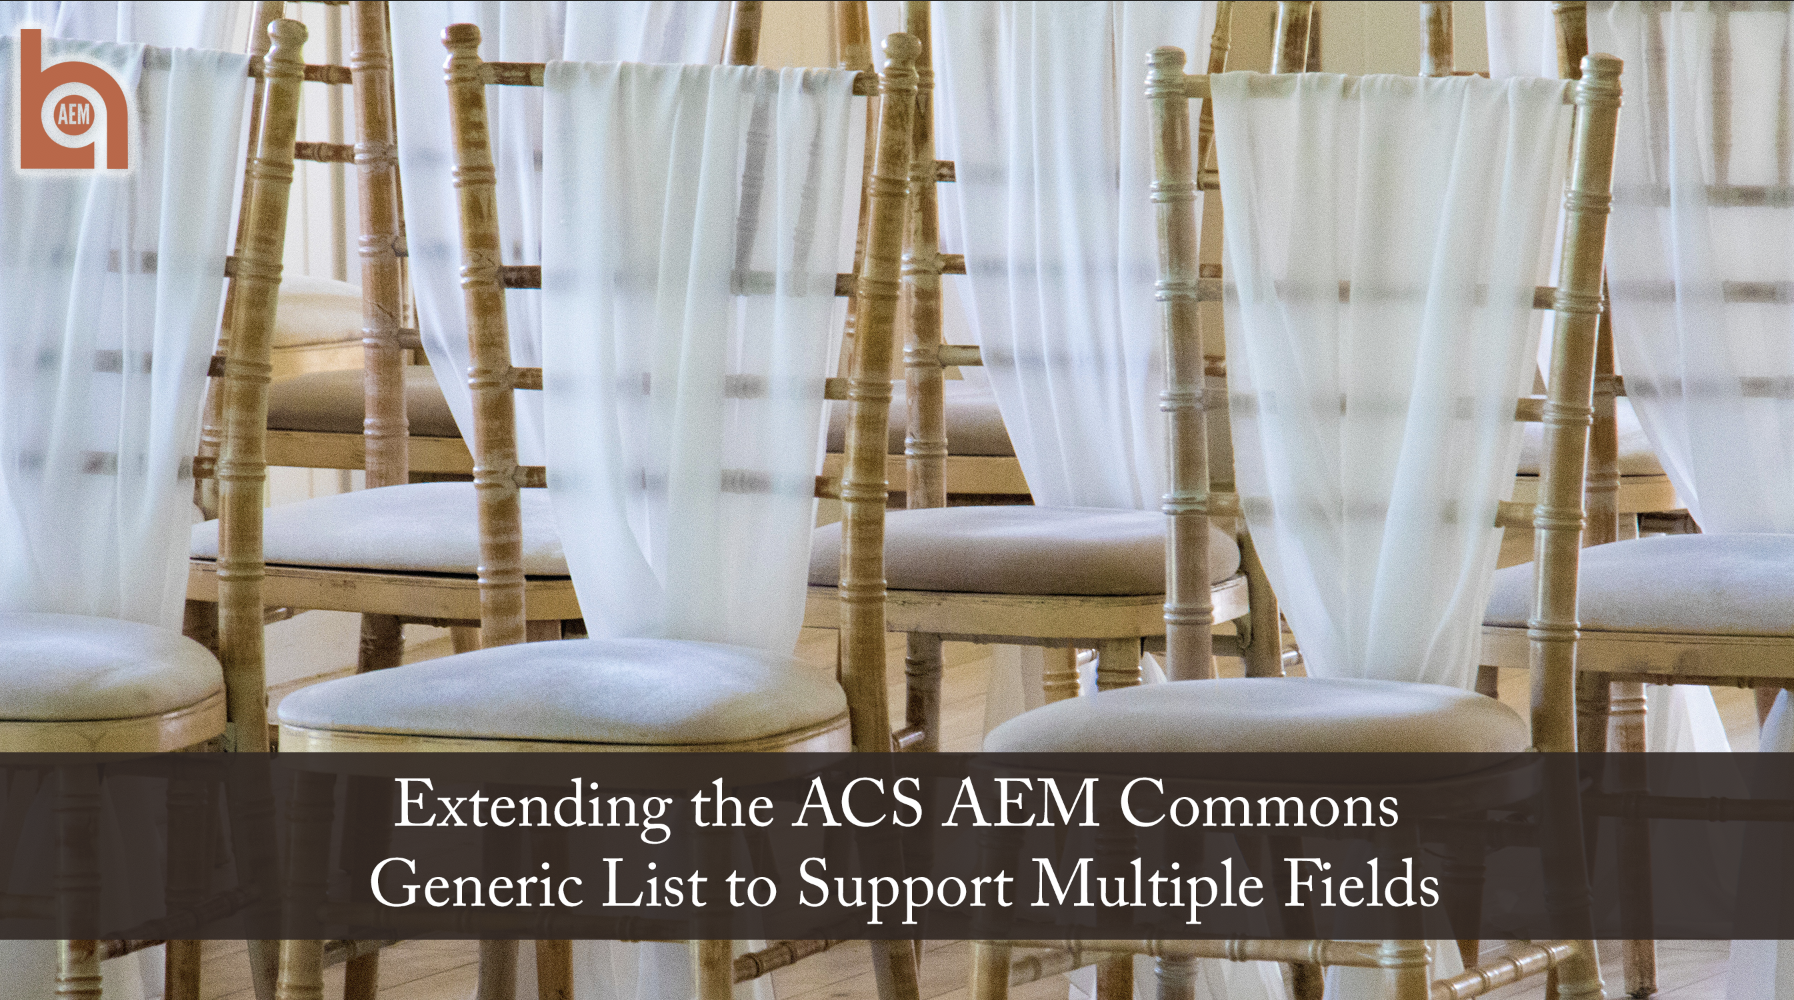 Extending the ACS AEM Commons Generic List to Support Multiple Fields